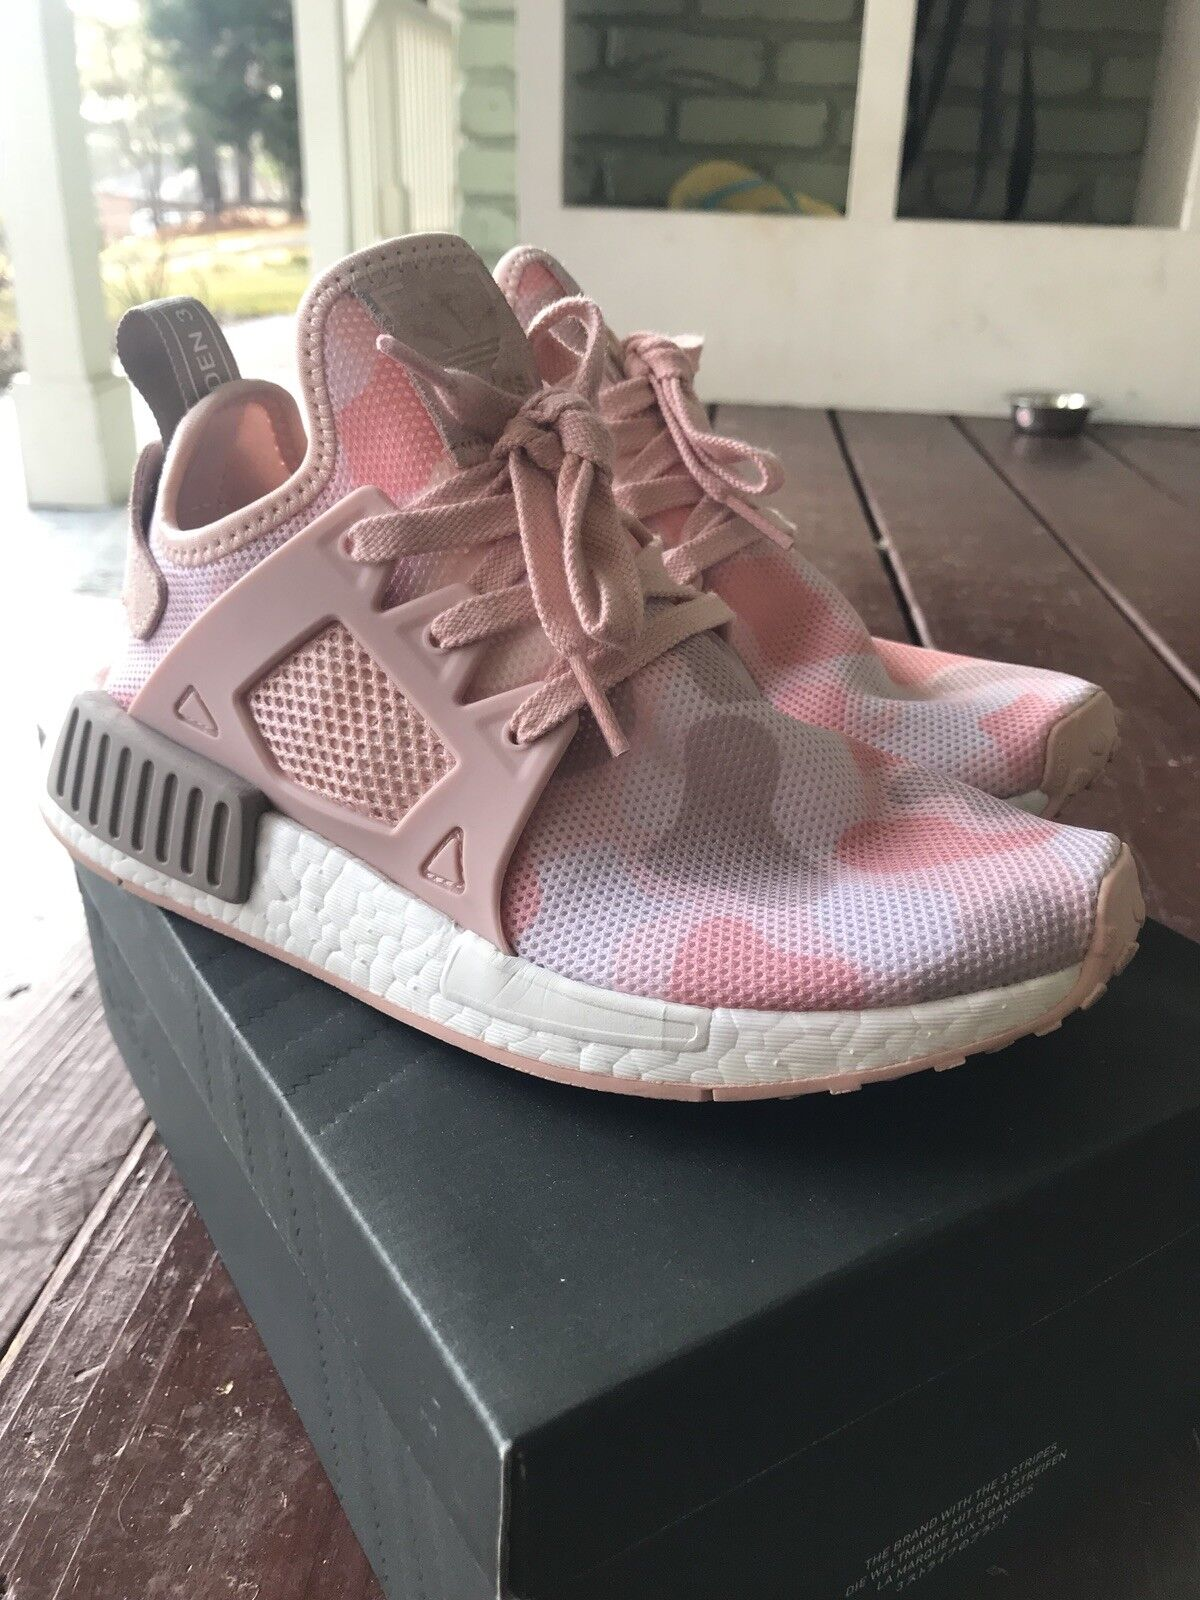 Addidas nmd xr1 Pink Duck Camo Womens Size 5.5